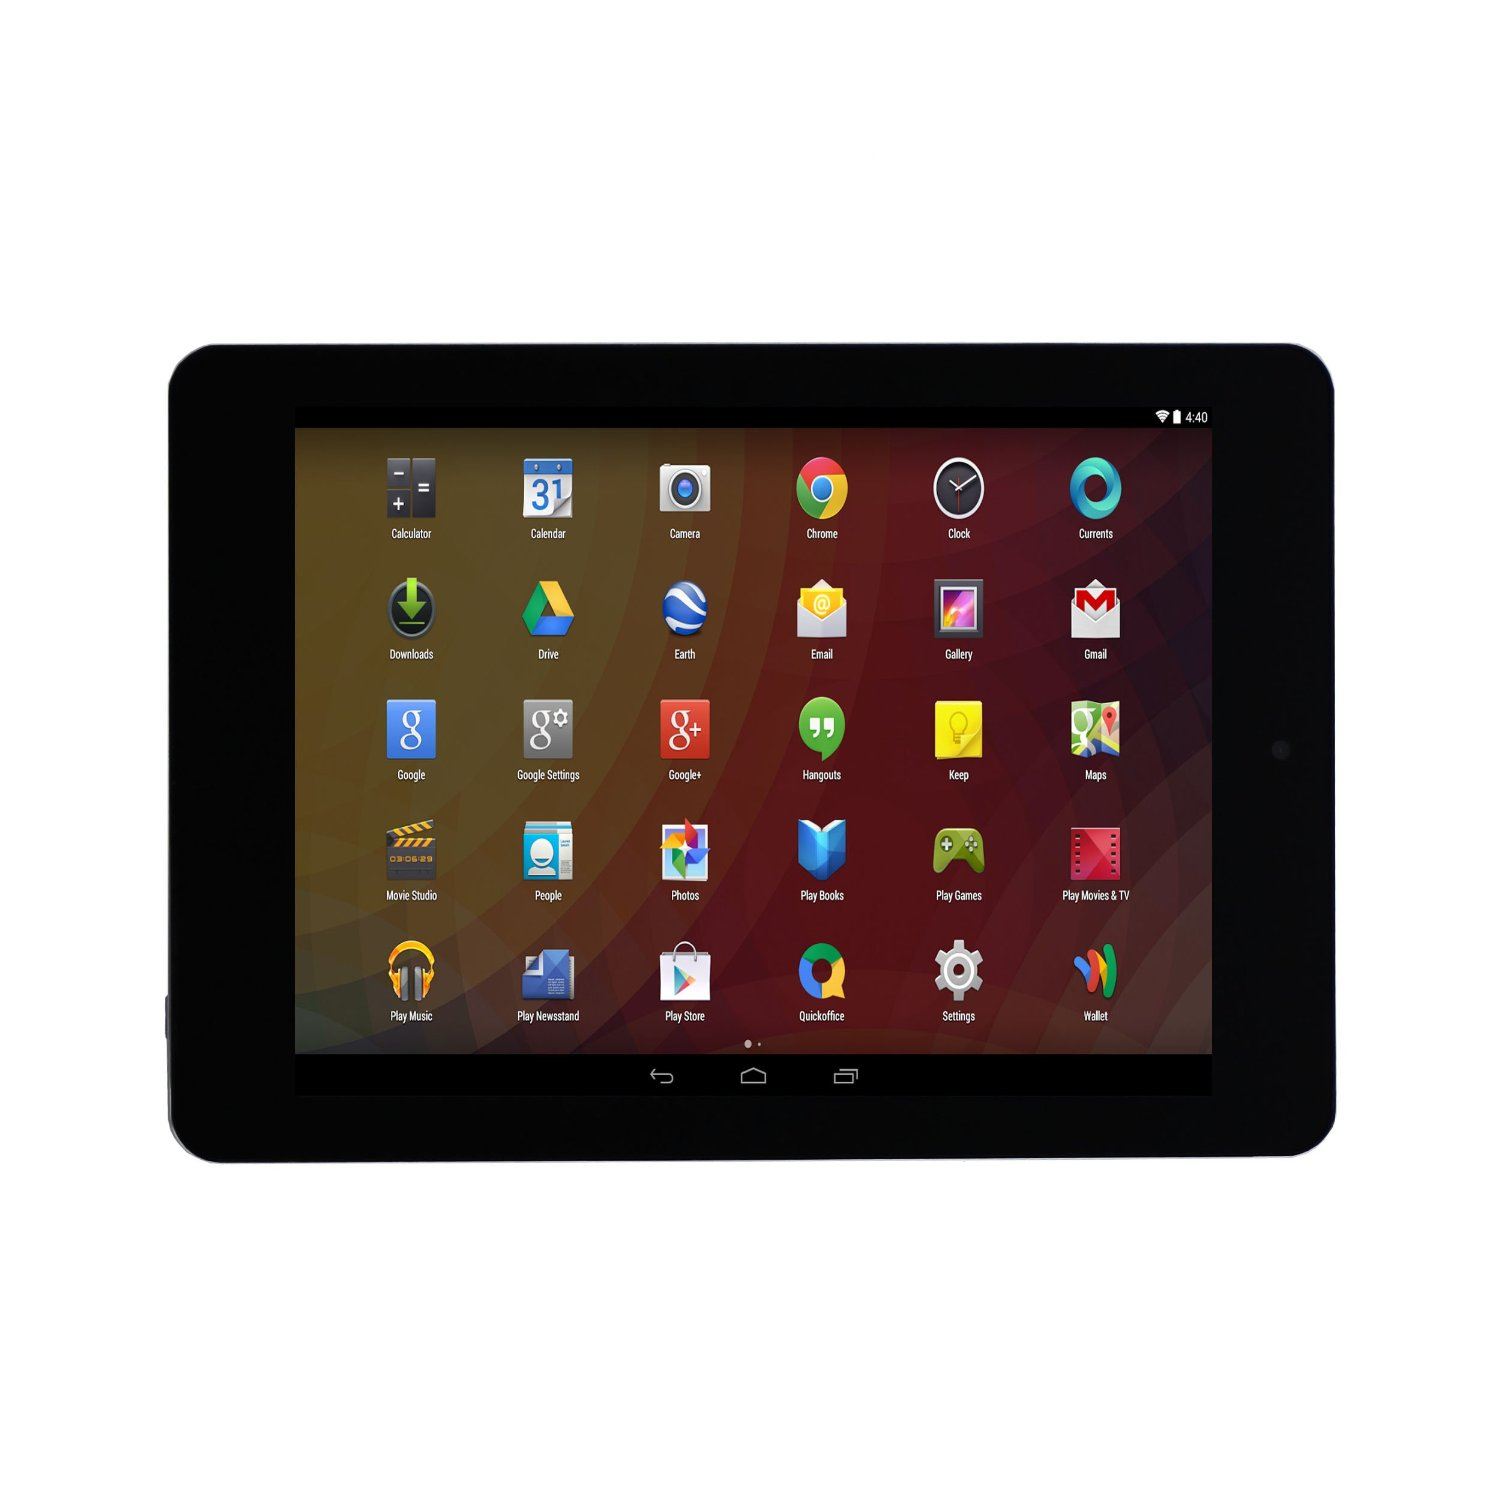 """JAZZ C855- 8"""" 1024x768 4GB 1.2GHz Dual Core Android 4.2 Tablet (Black) - New"""